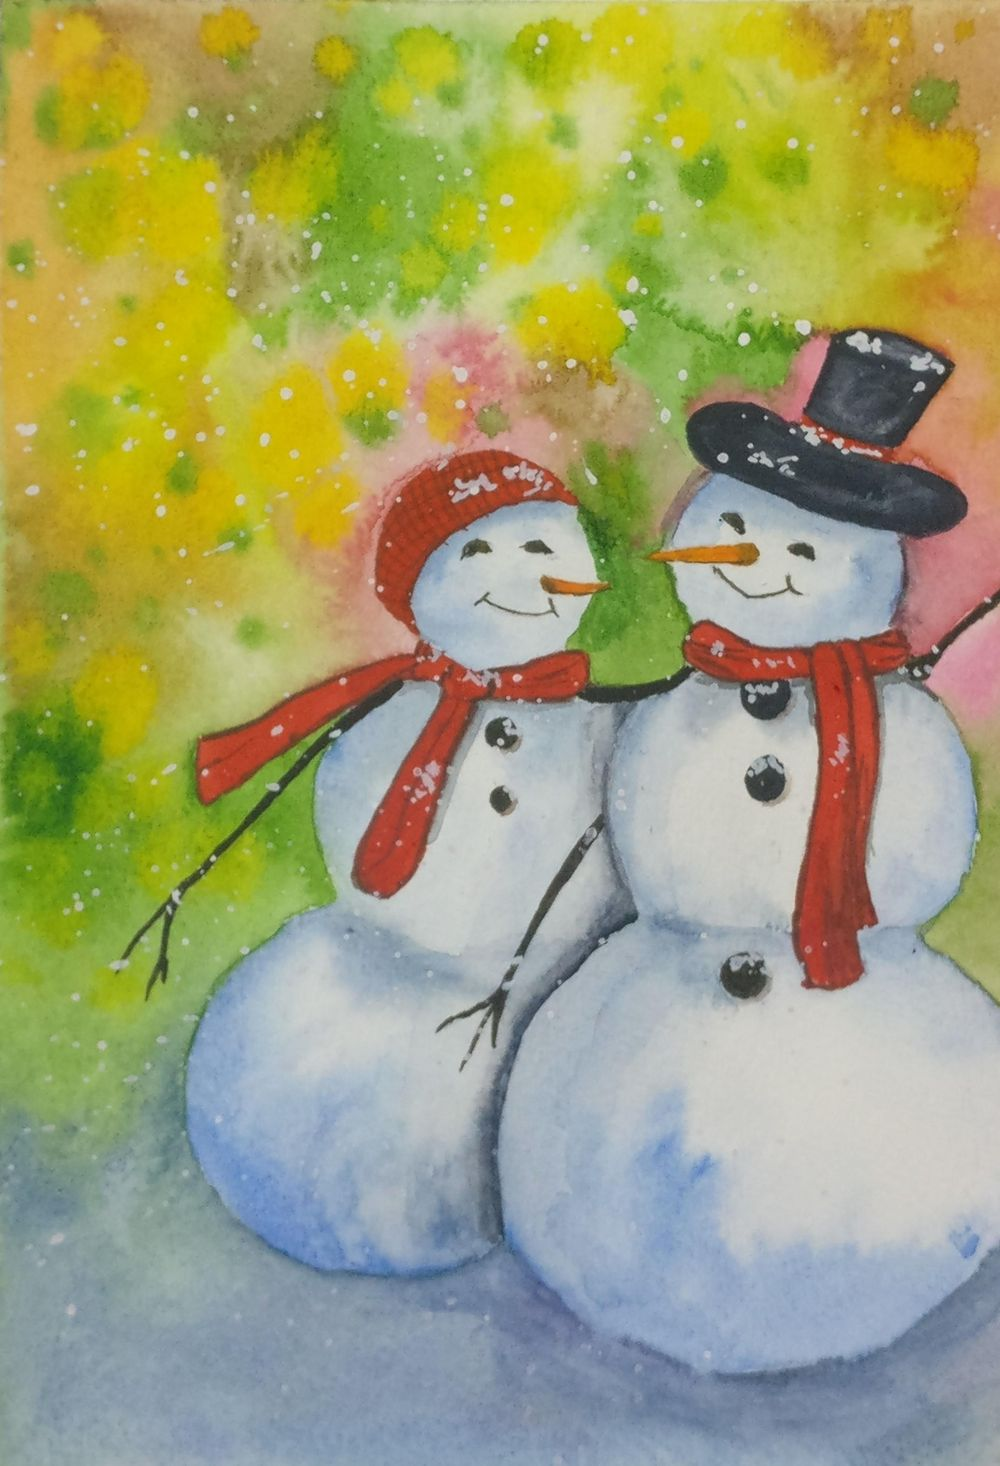 Christmas with watercolors - image 6 - student project